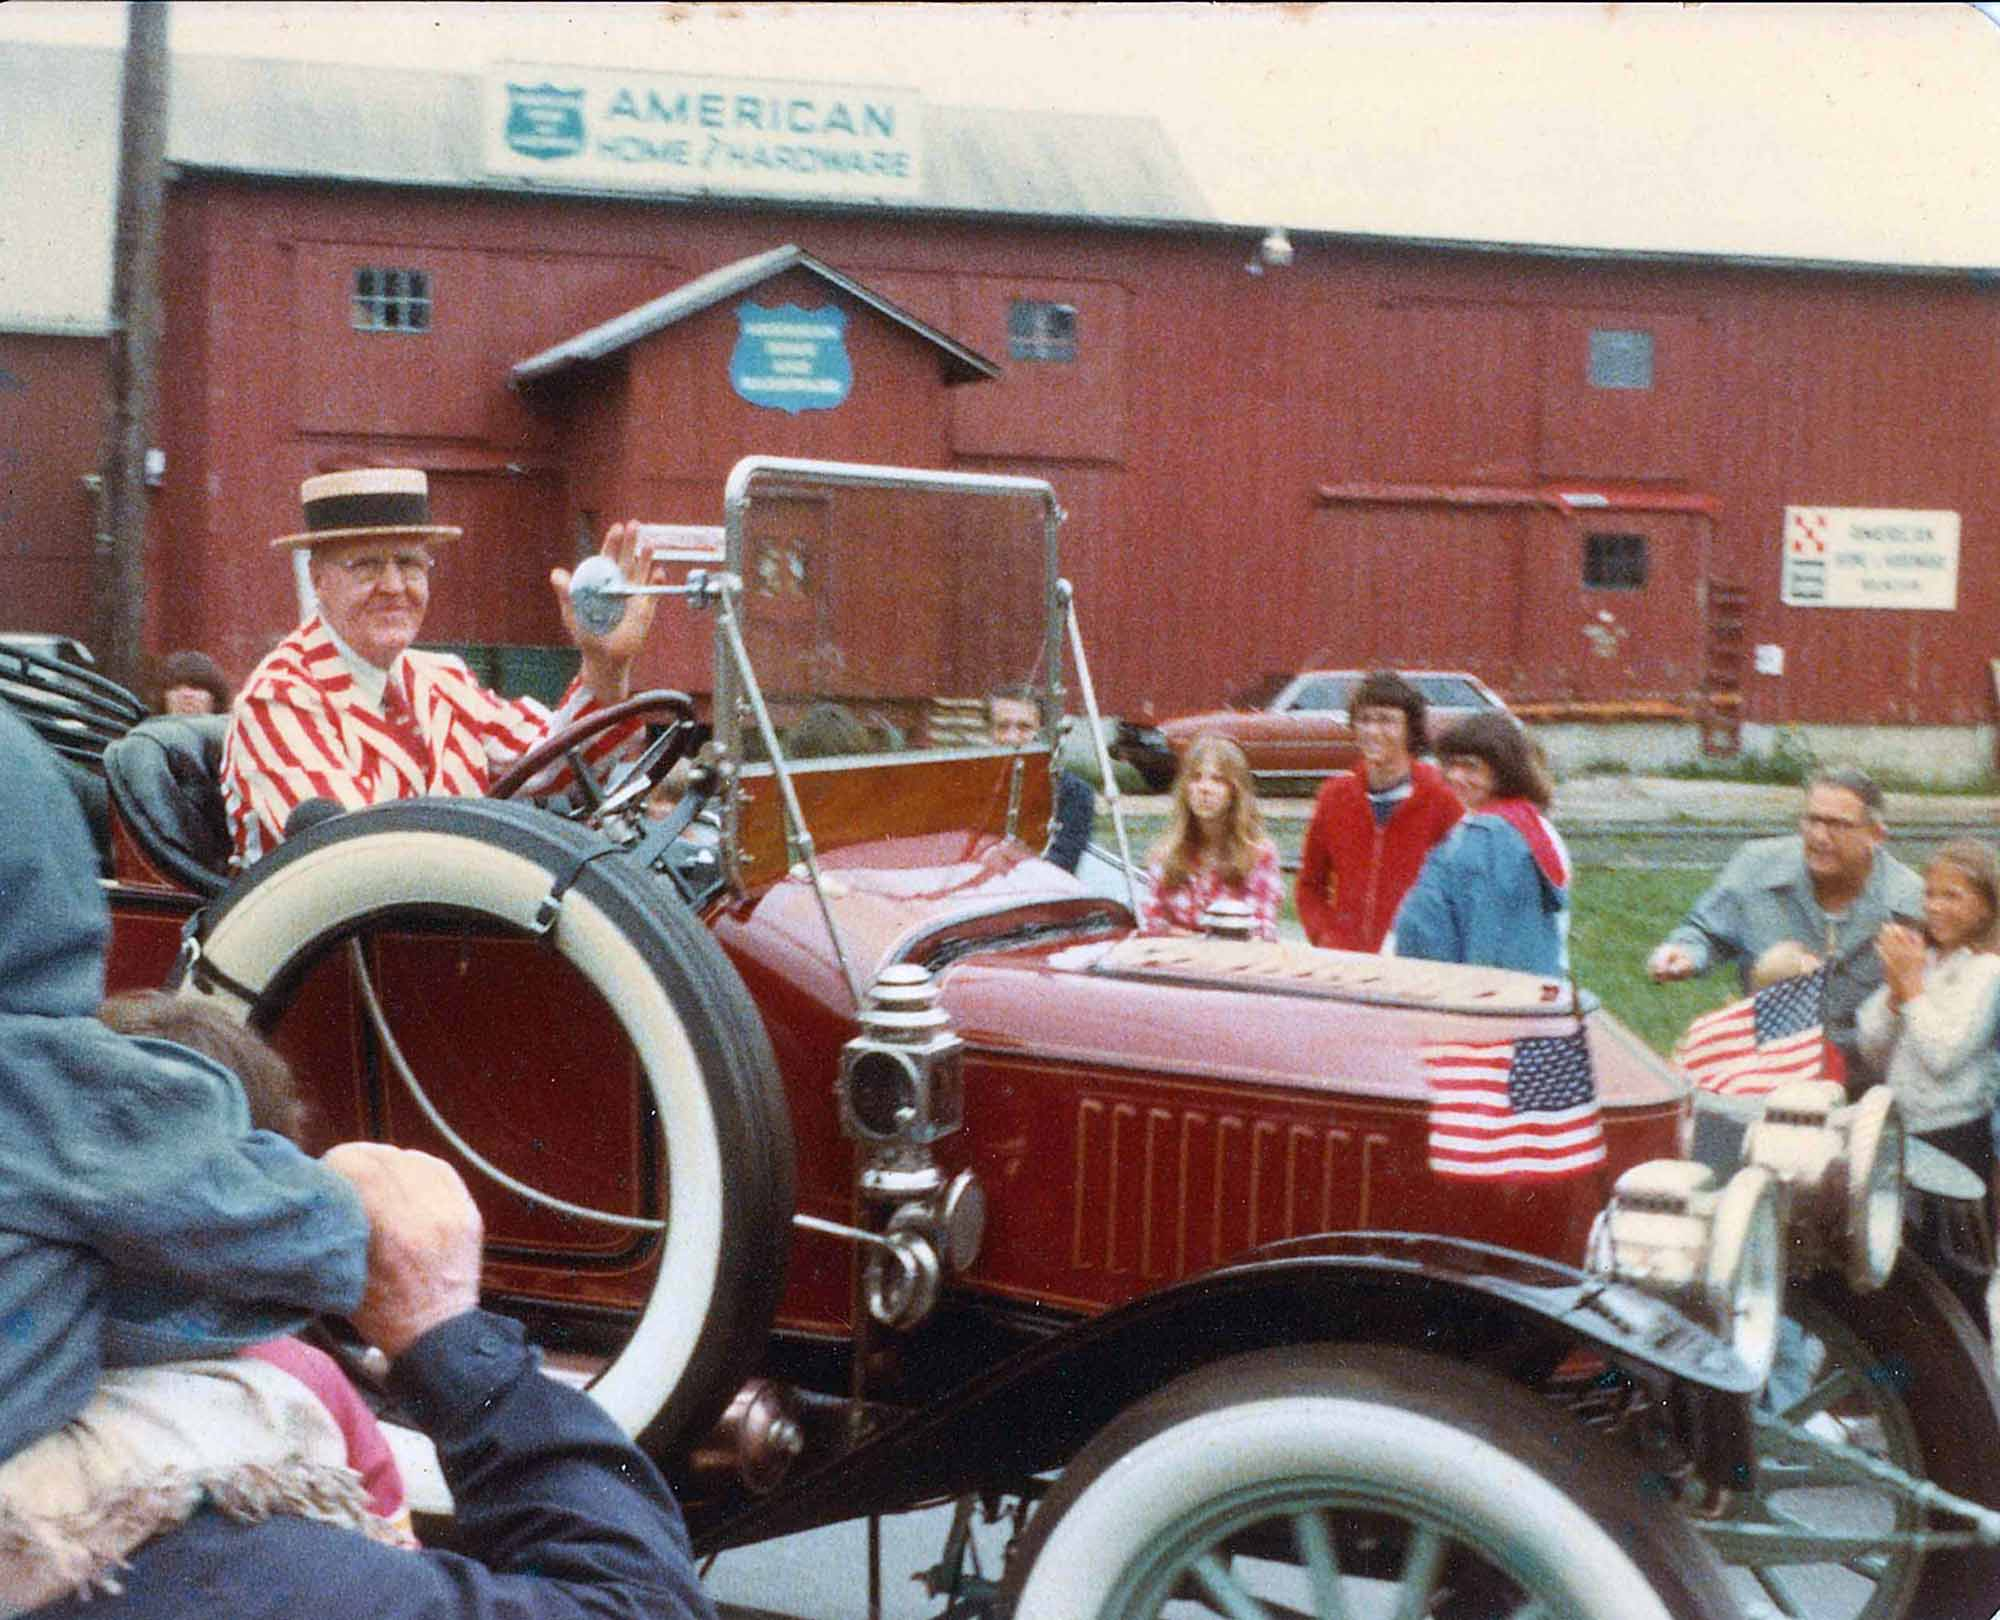 1978 07-4 Hockessin Parade-Tom driving Model 87